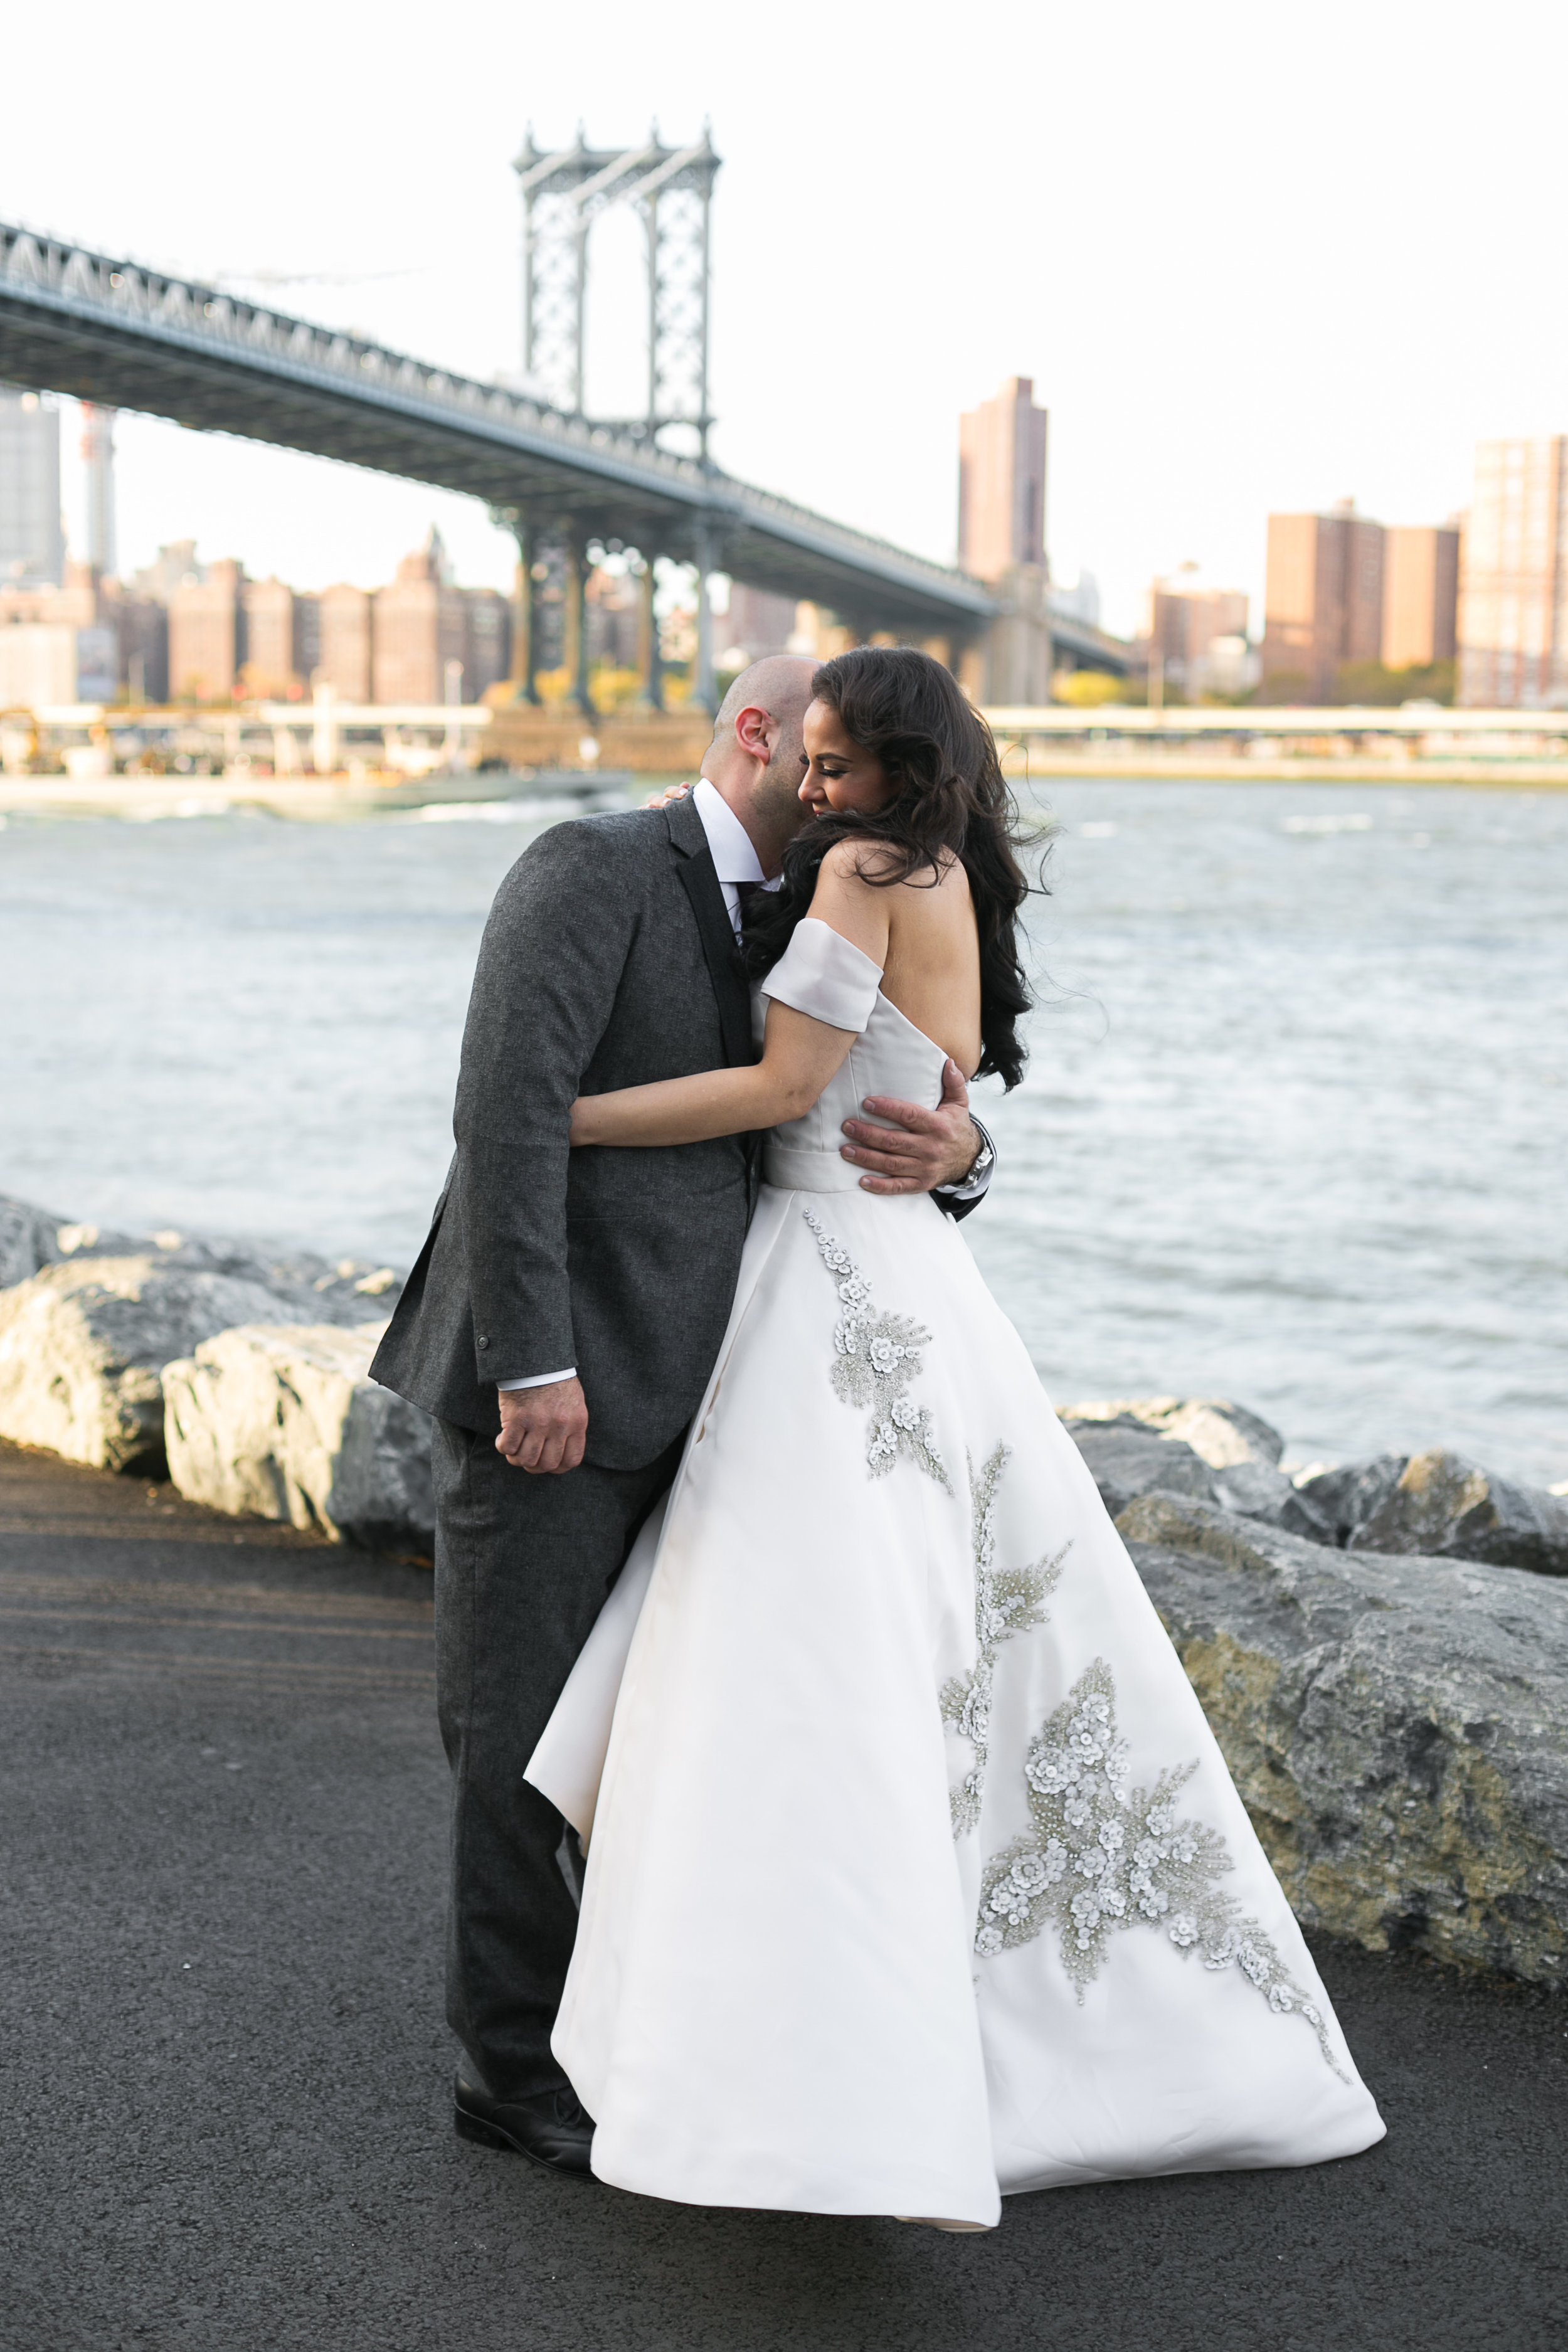 Hannah & Baruch: a Brooklyn fairy tale - …Many hours of embroidery and what had seemed like a thousand yards of ruched tulle later the final product was ready. After the wedding Hannah told me she felt like a princess…